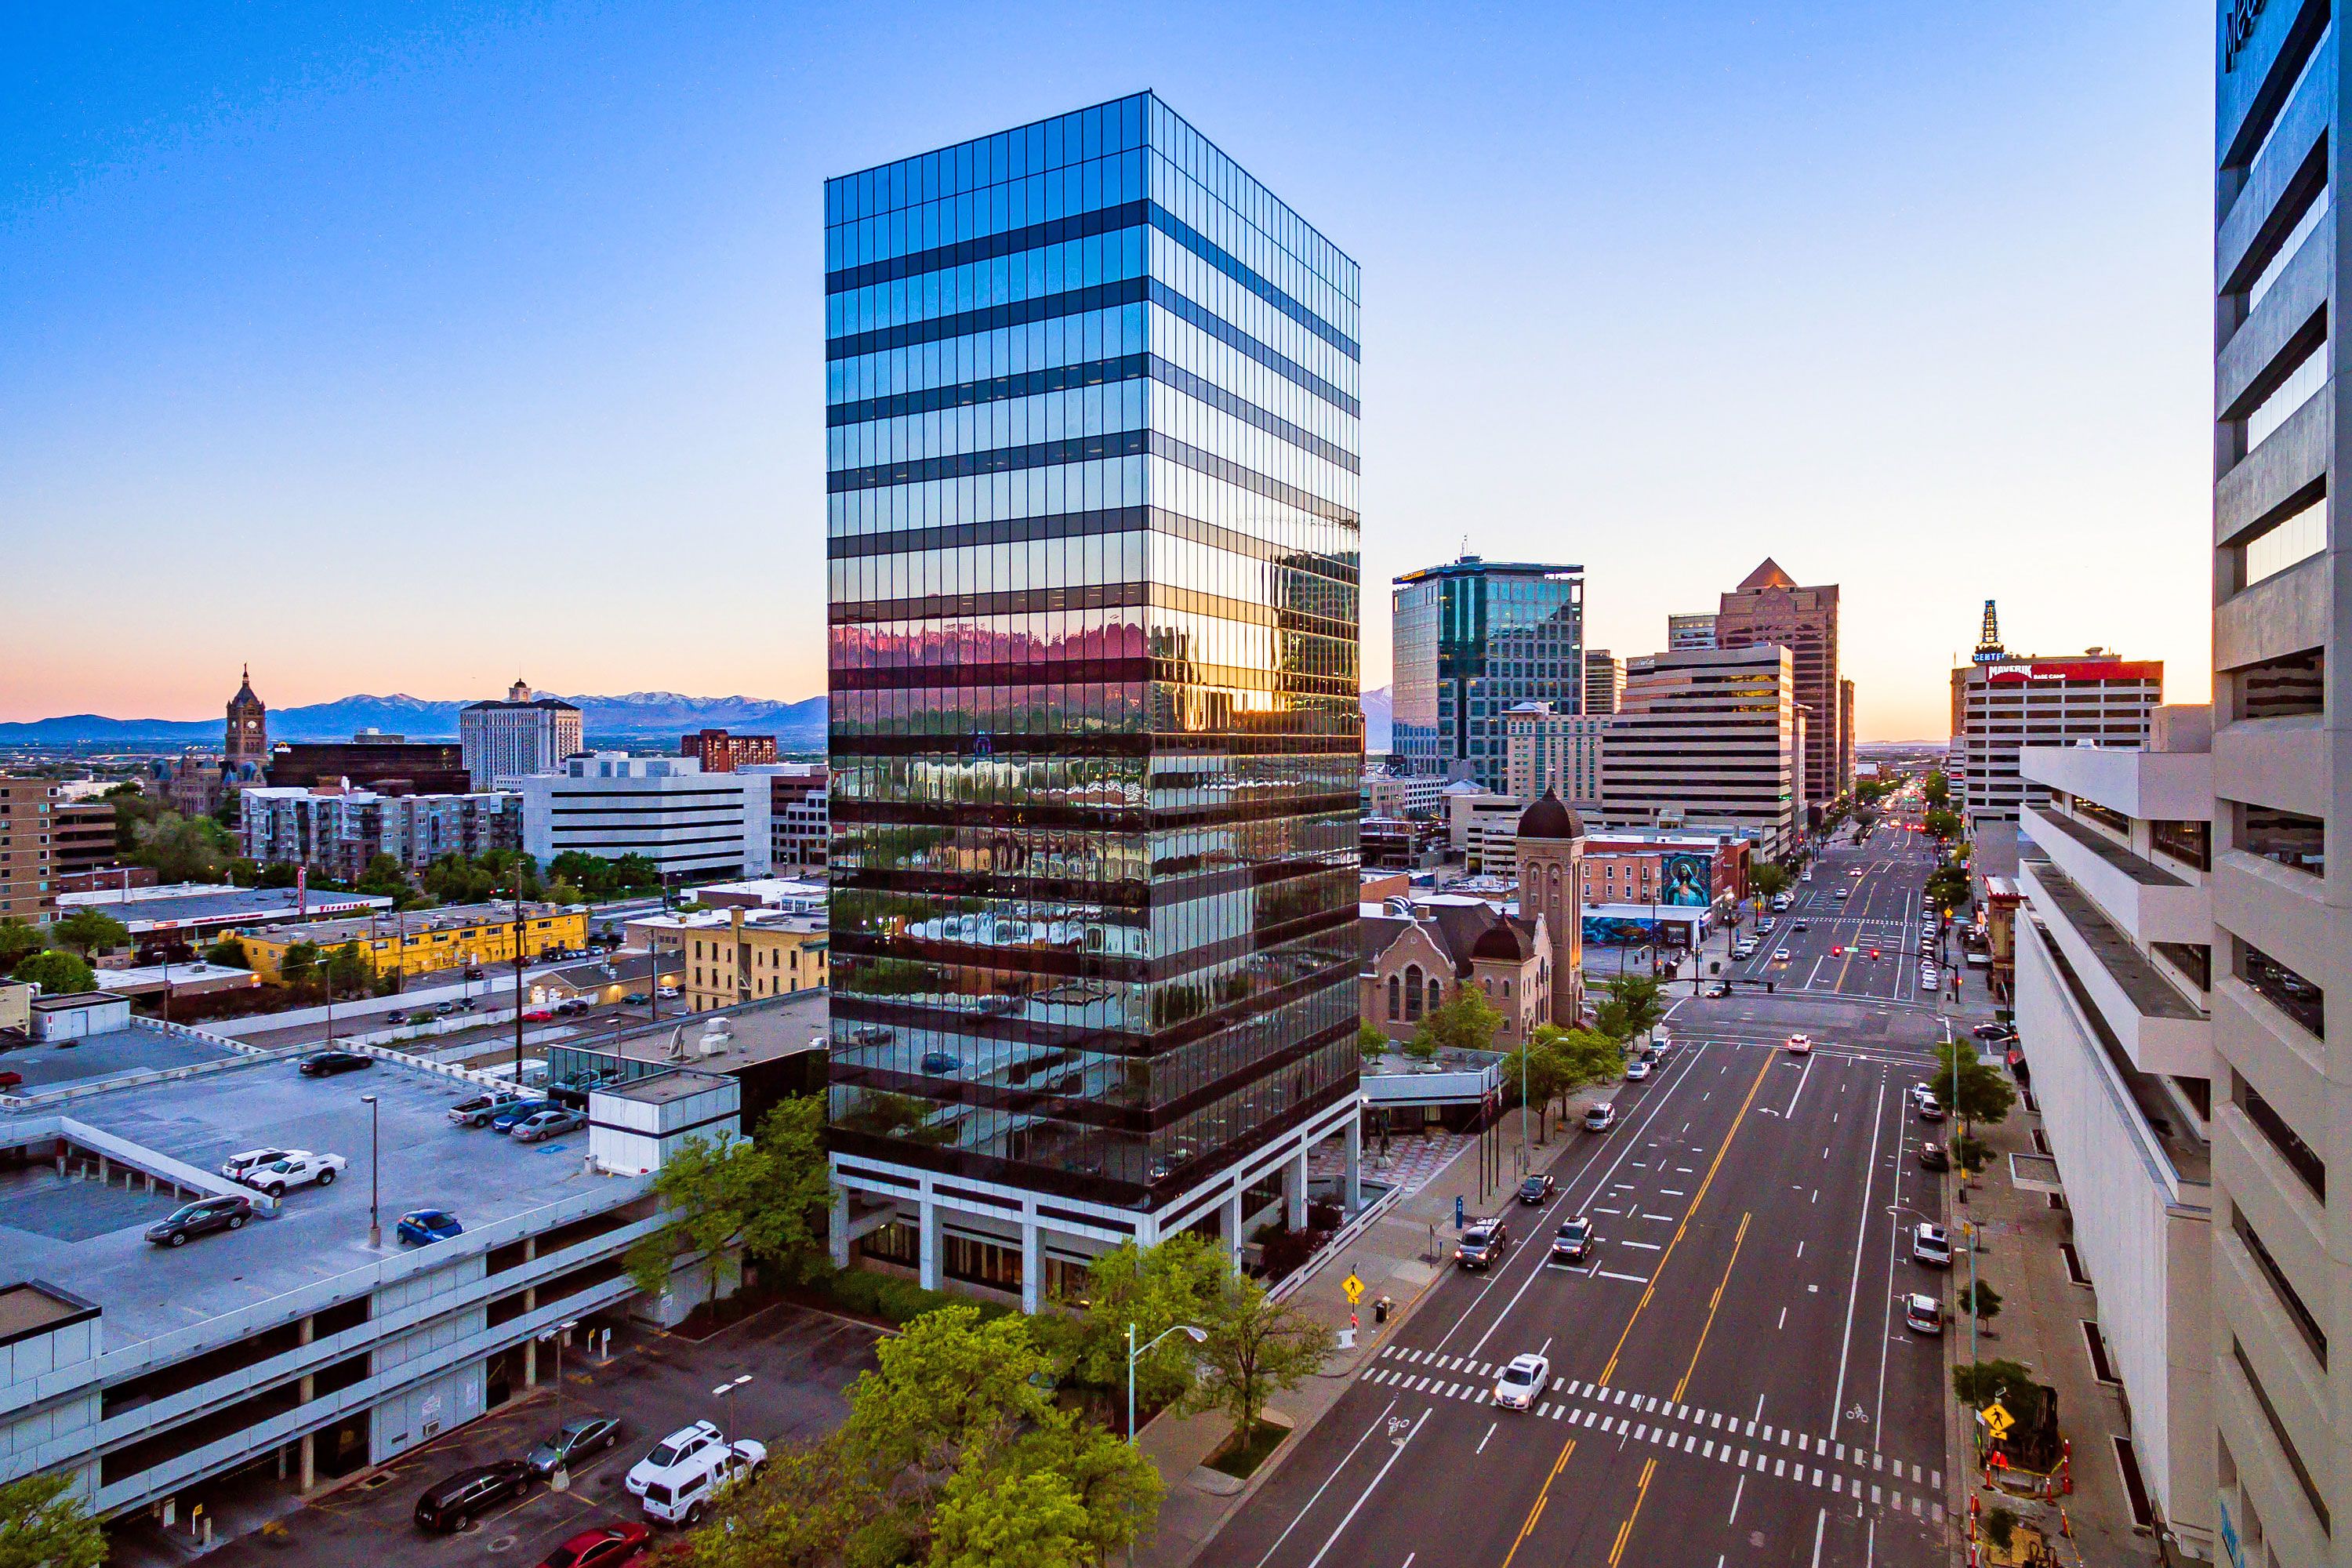 Office Tower - Salt Lake City, Utah. Aerial Photography by Alan Blakely.